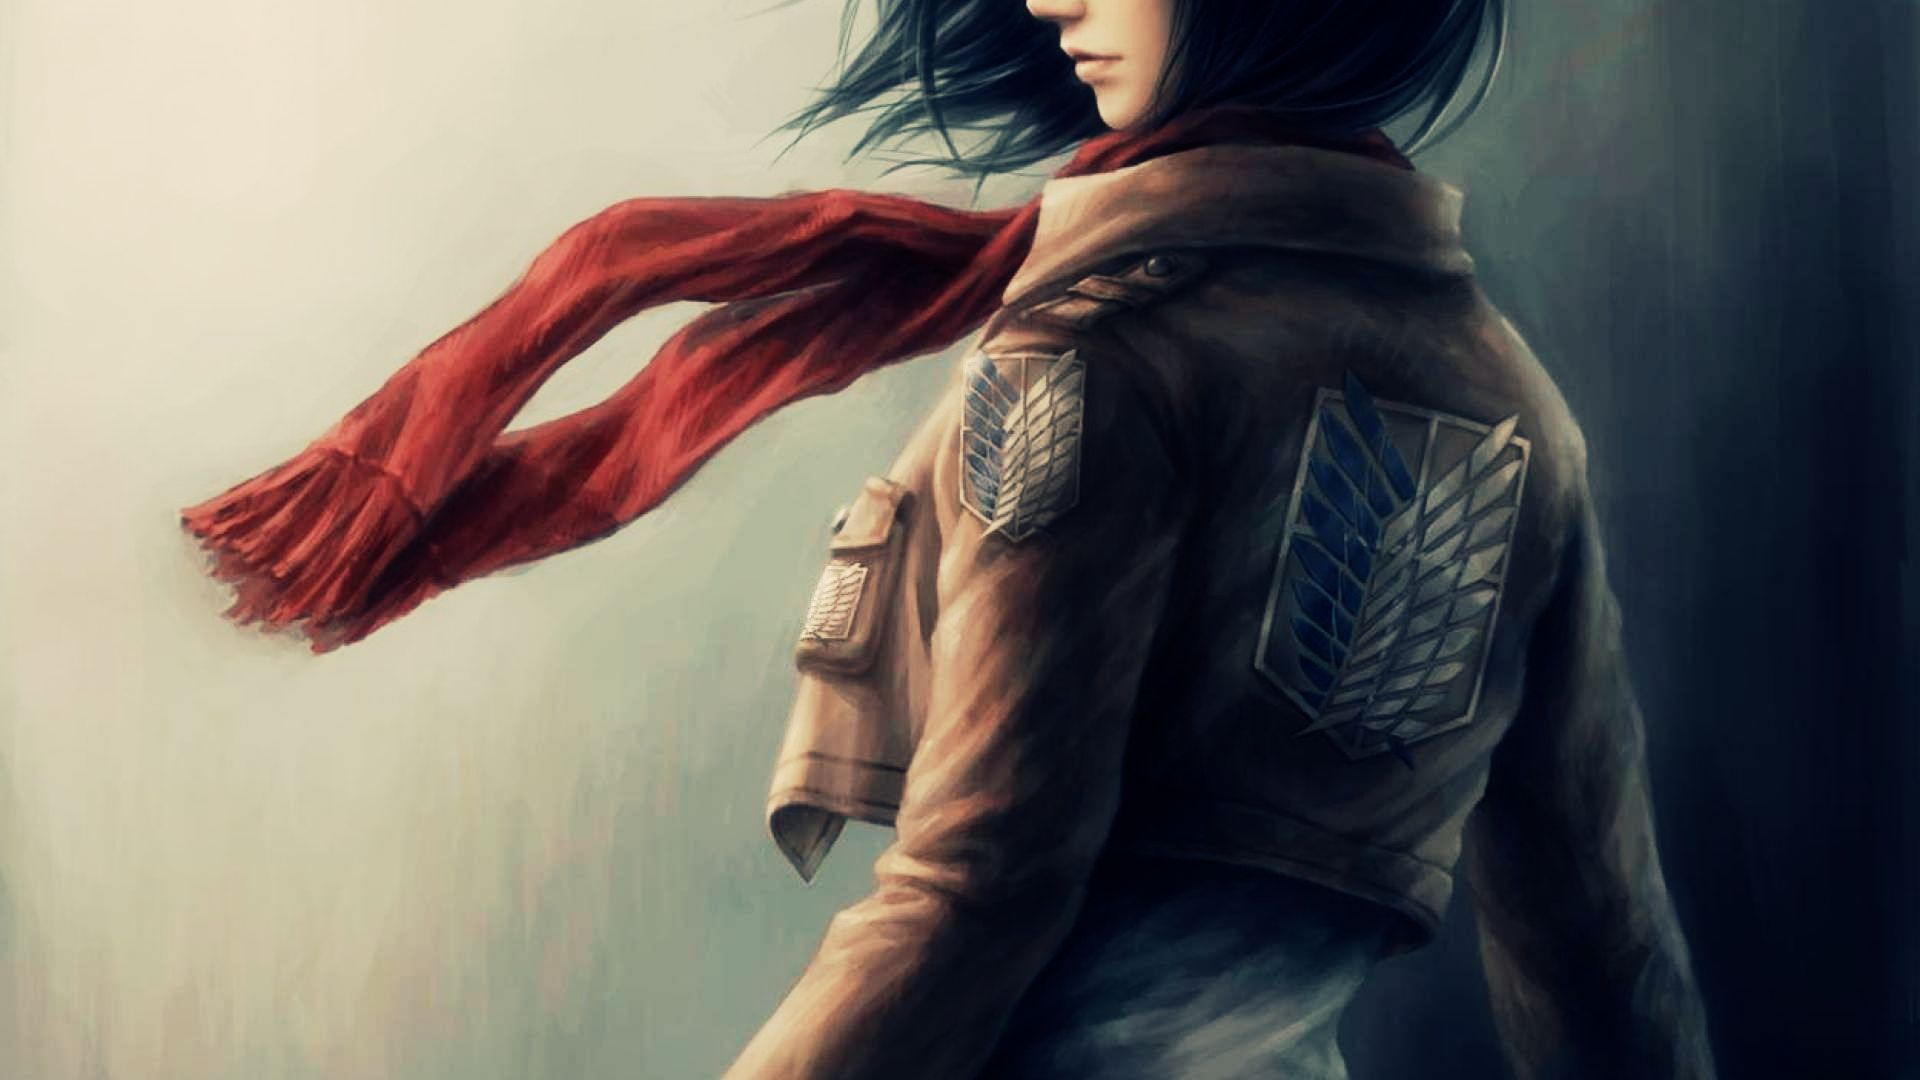 Mikasa Ackerman By Themikoyt On Deviantart In 2020 Mikasa Attack On Titan Attack On Titan Art